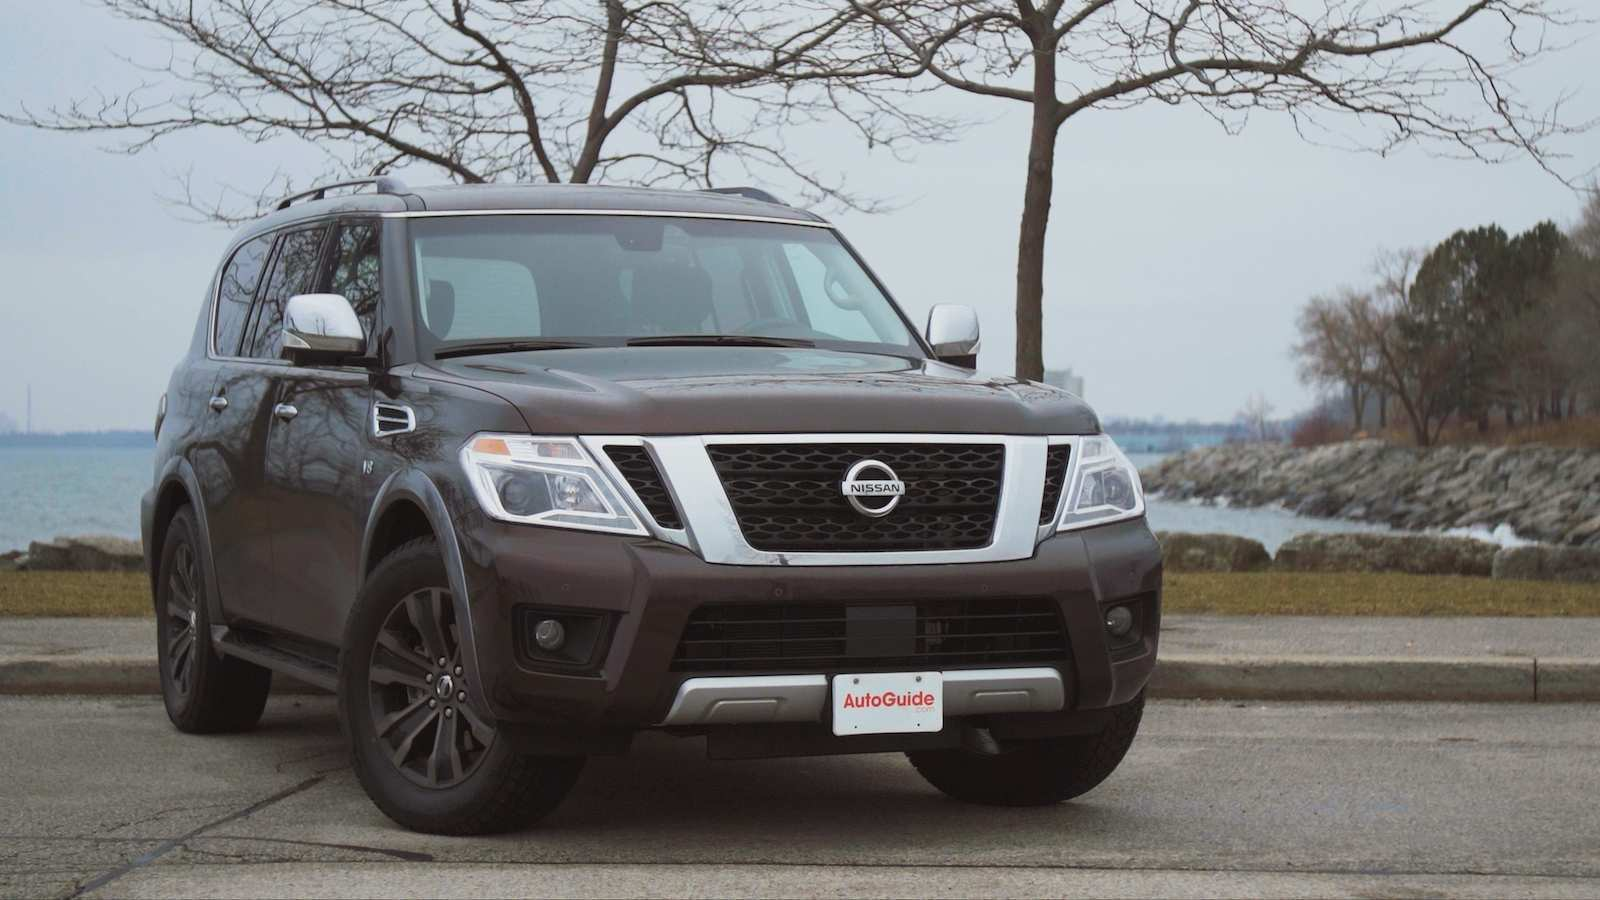 29 Great Best Nissan 2019 Armada Picture Release Date And Review Exterior for Best Nissan 2019 Armada Picture Release Date And Review